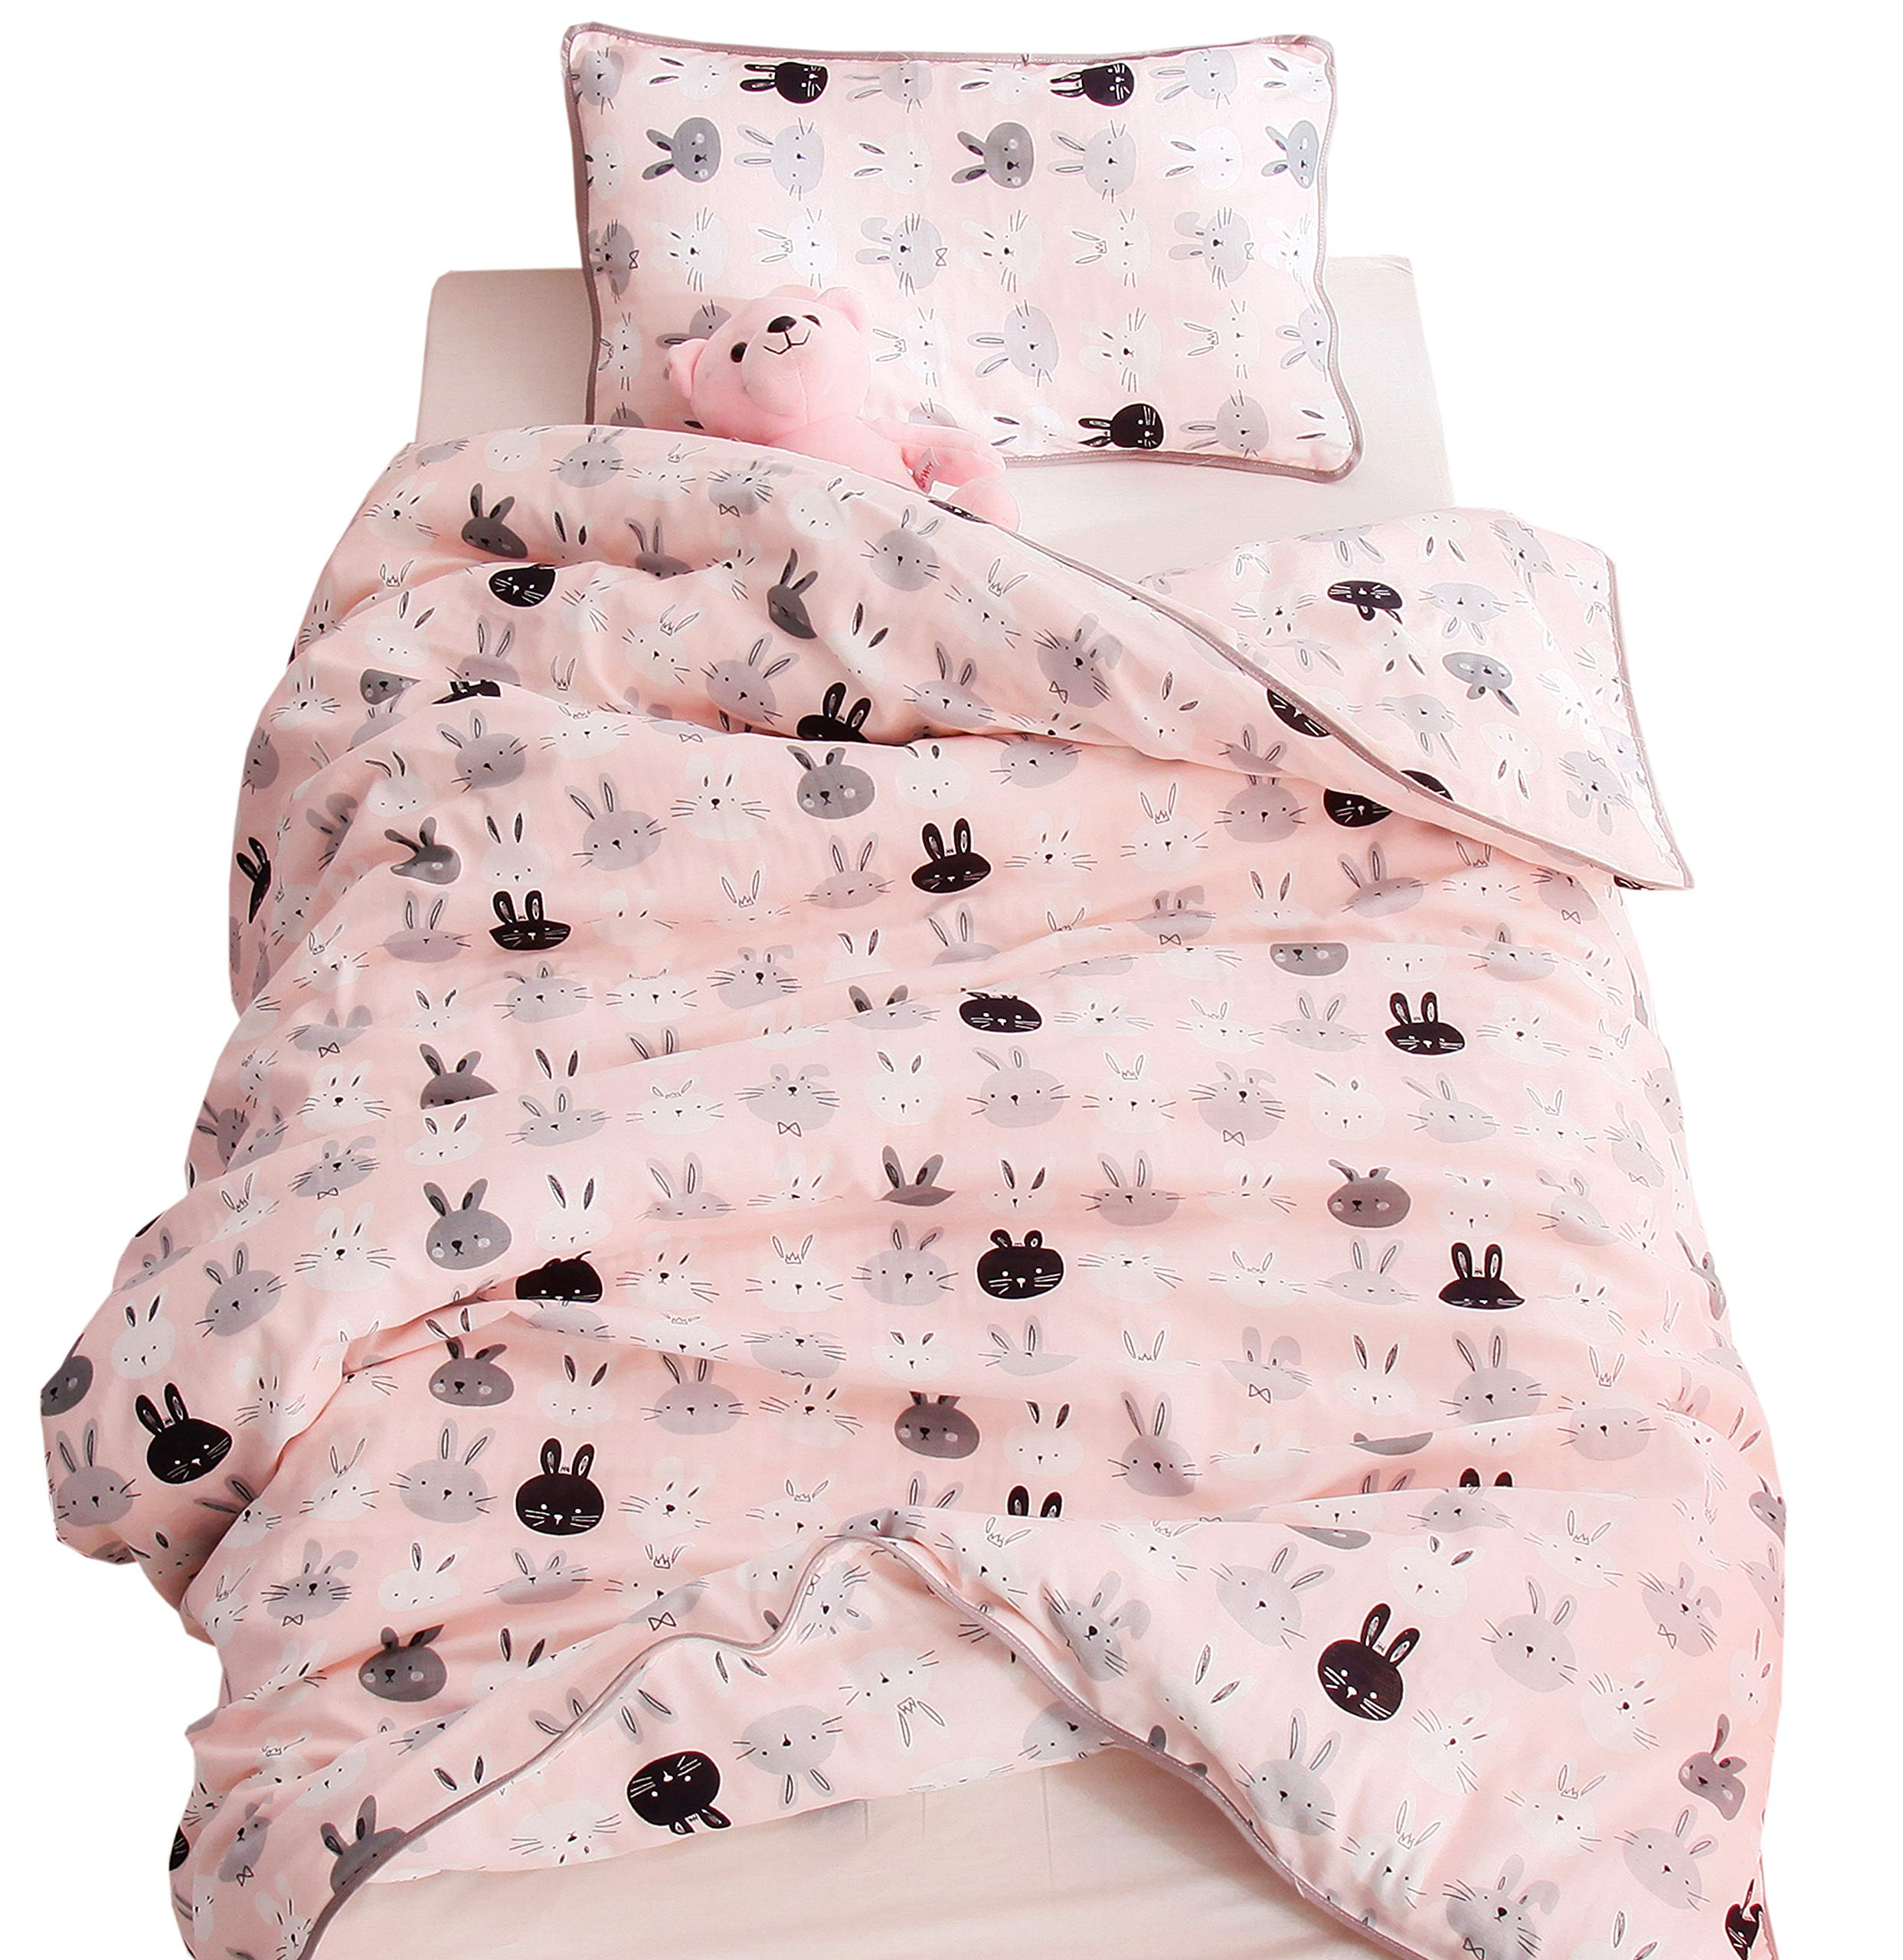 J-pinno Boys Girls Pink Bunny Muslin Duvet Covers, 100% Cotton, Invisible Zipper, for Kids Crib/Twin Bedding Decoration Gift (Twin 59'' X 78'', Pink)